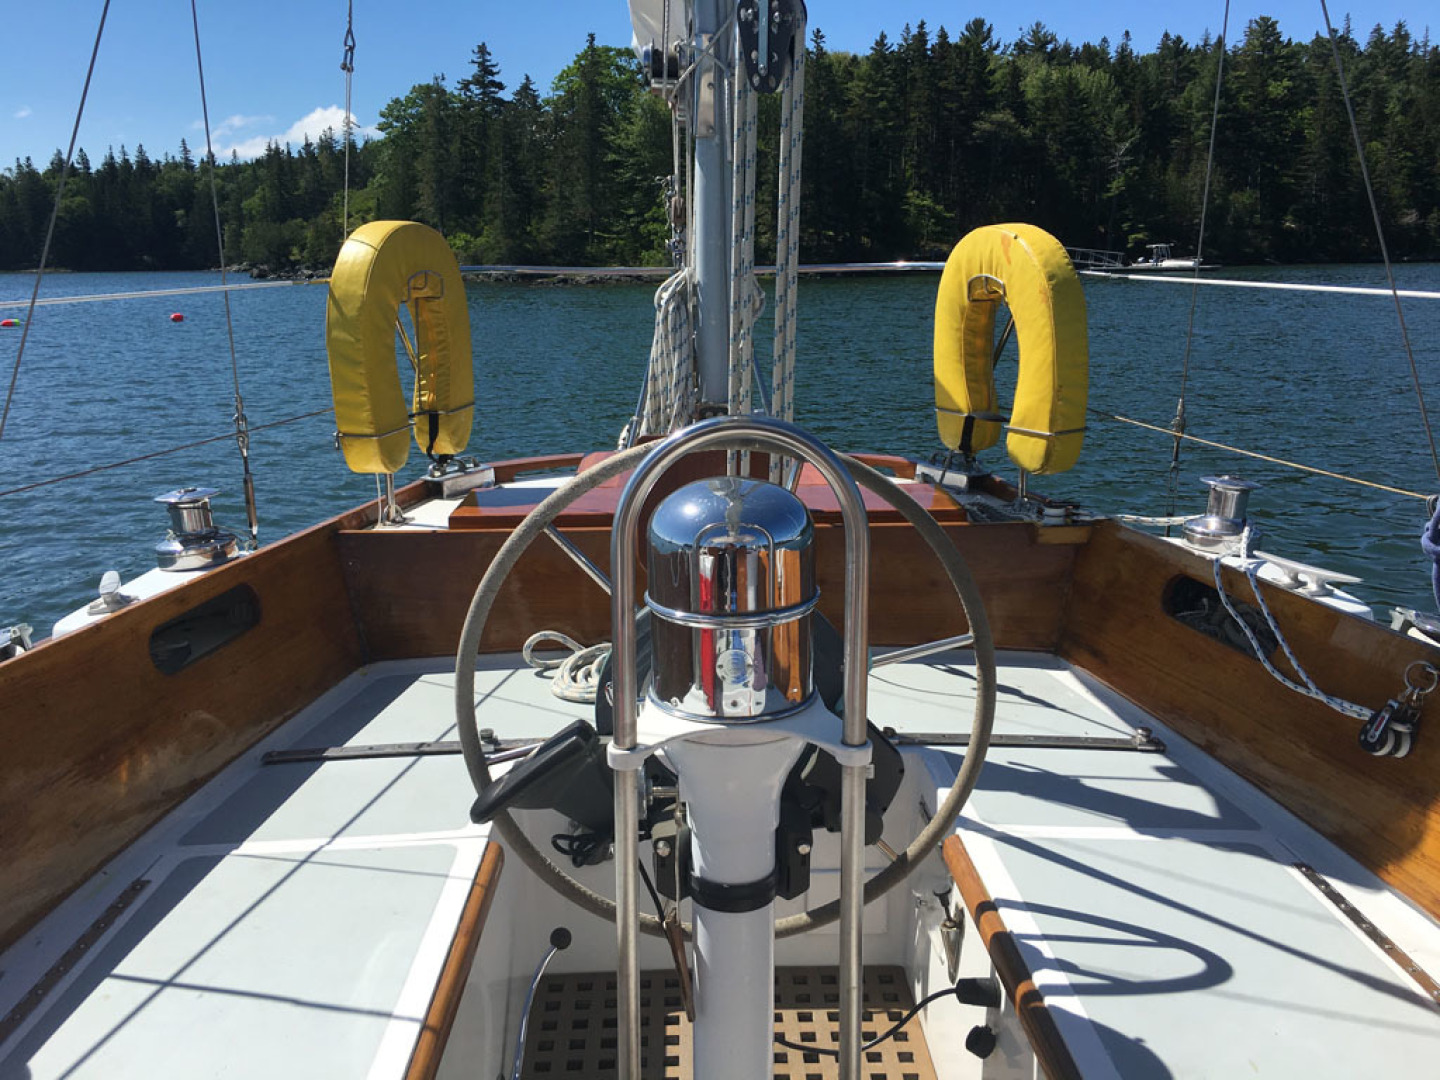 Hinckley-Bermuda 40 Yawl 1970-Rhodora South Berwick-Maine-United States-Cockpit Looking Aft-1588062 | Thumbnail